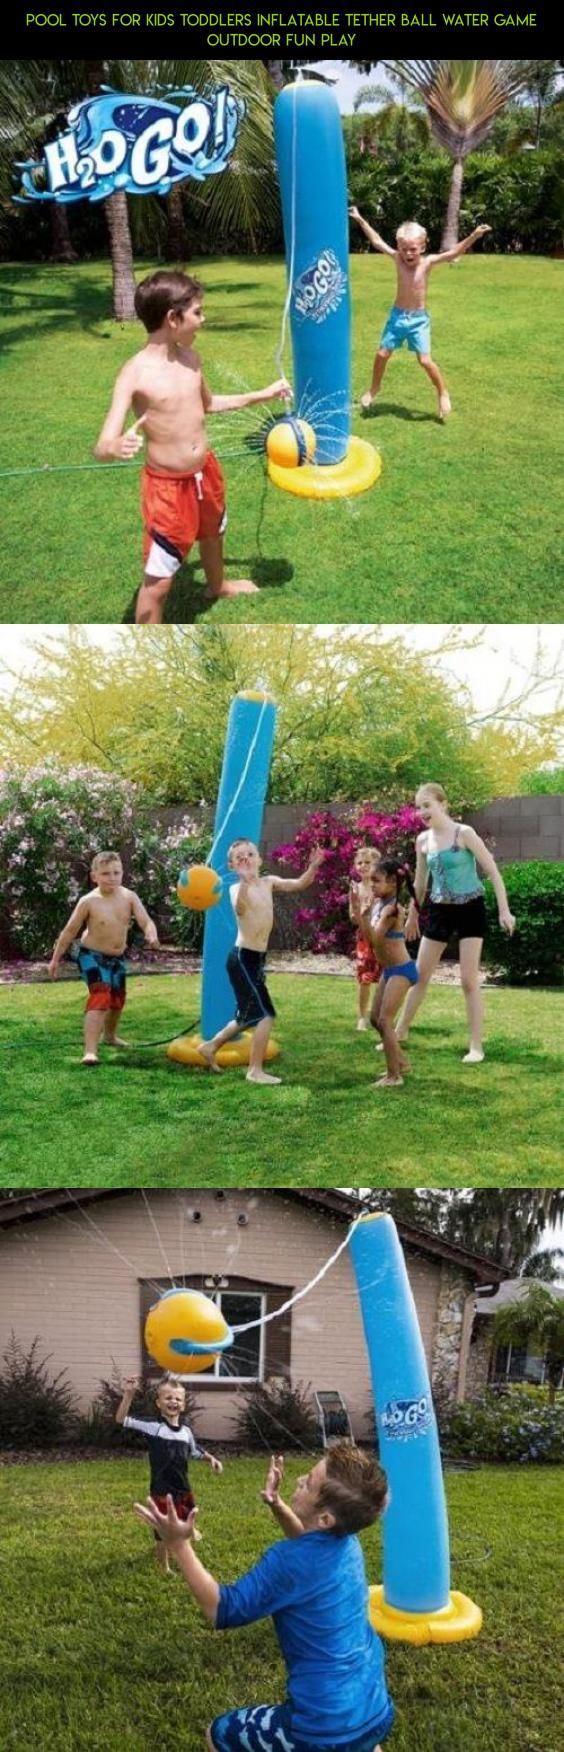 Unique Outdoor Toys For Toddlers : Unique pool toys for kids ideas on pinterest